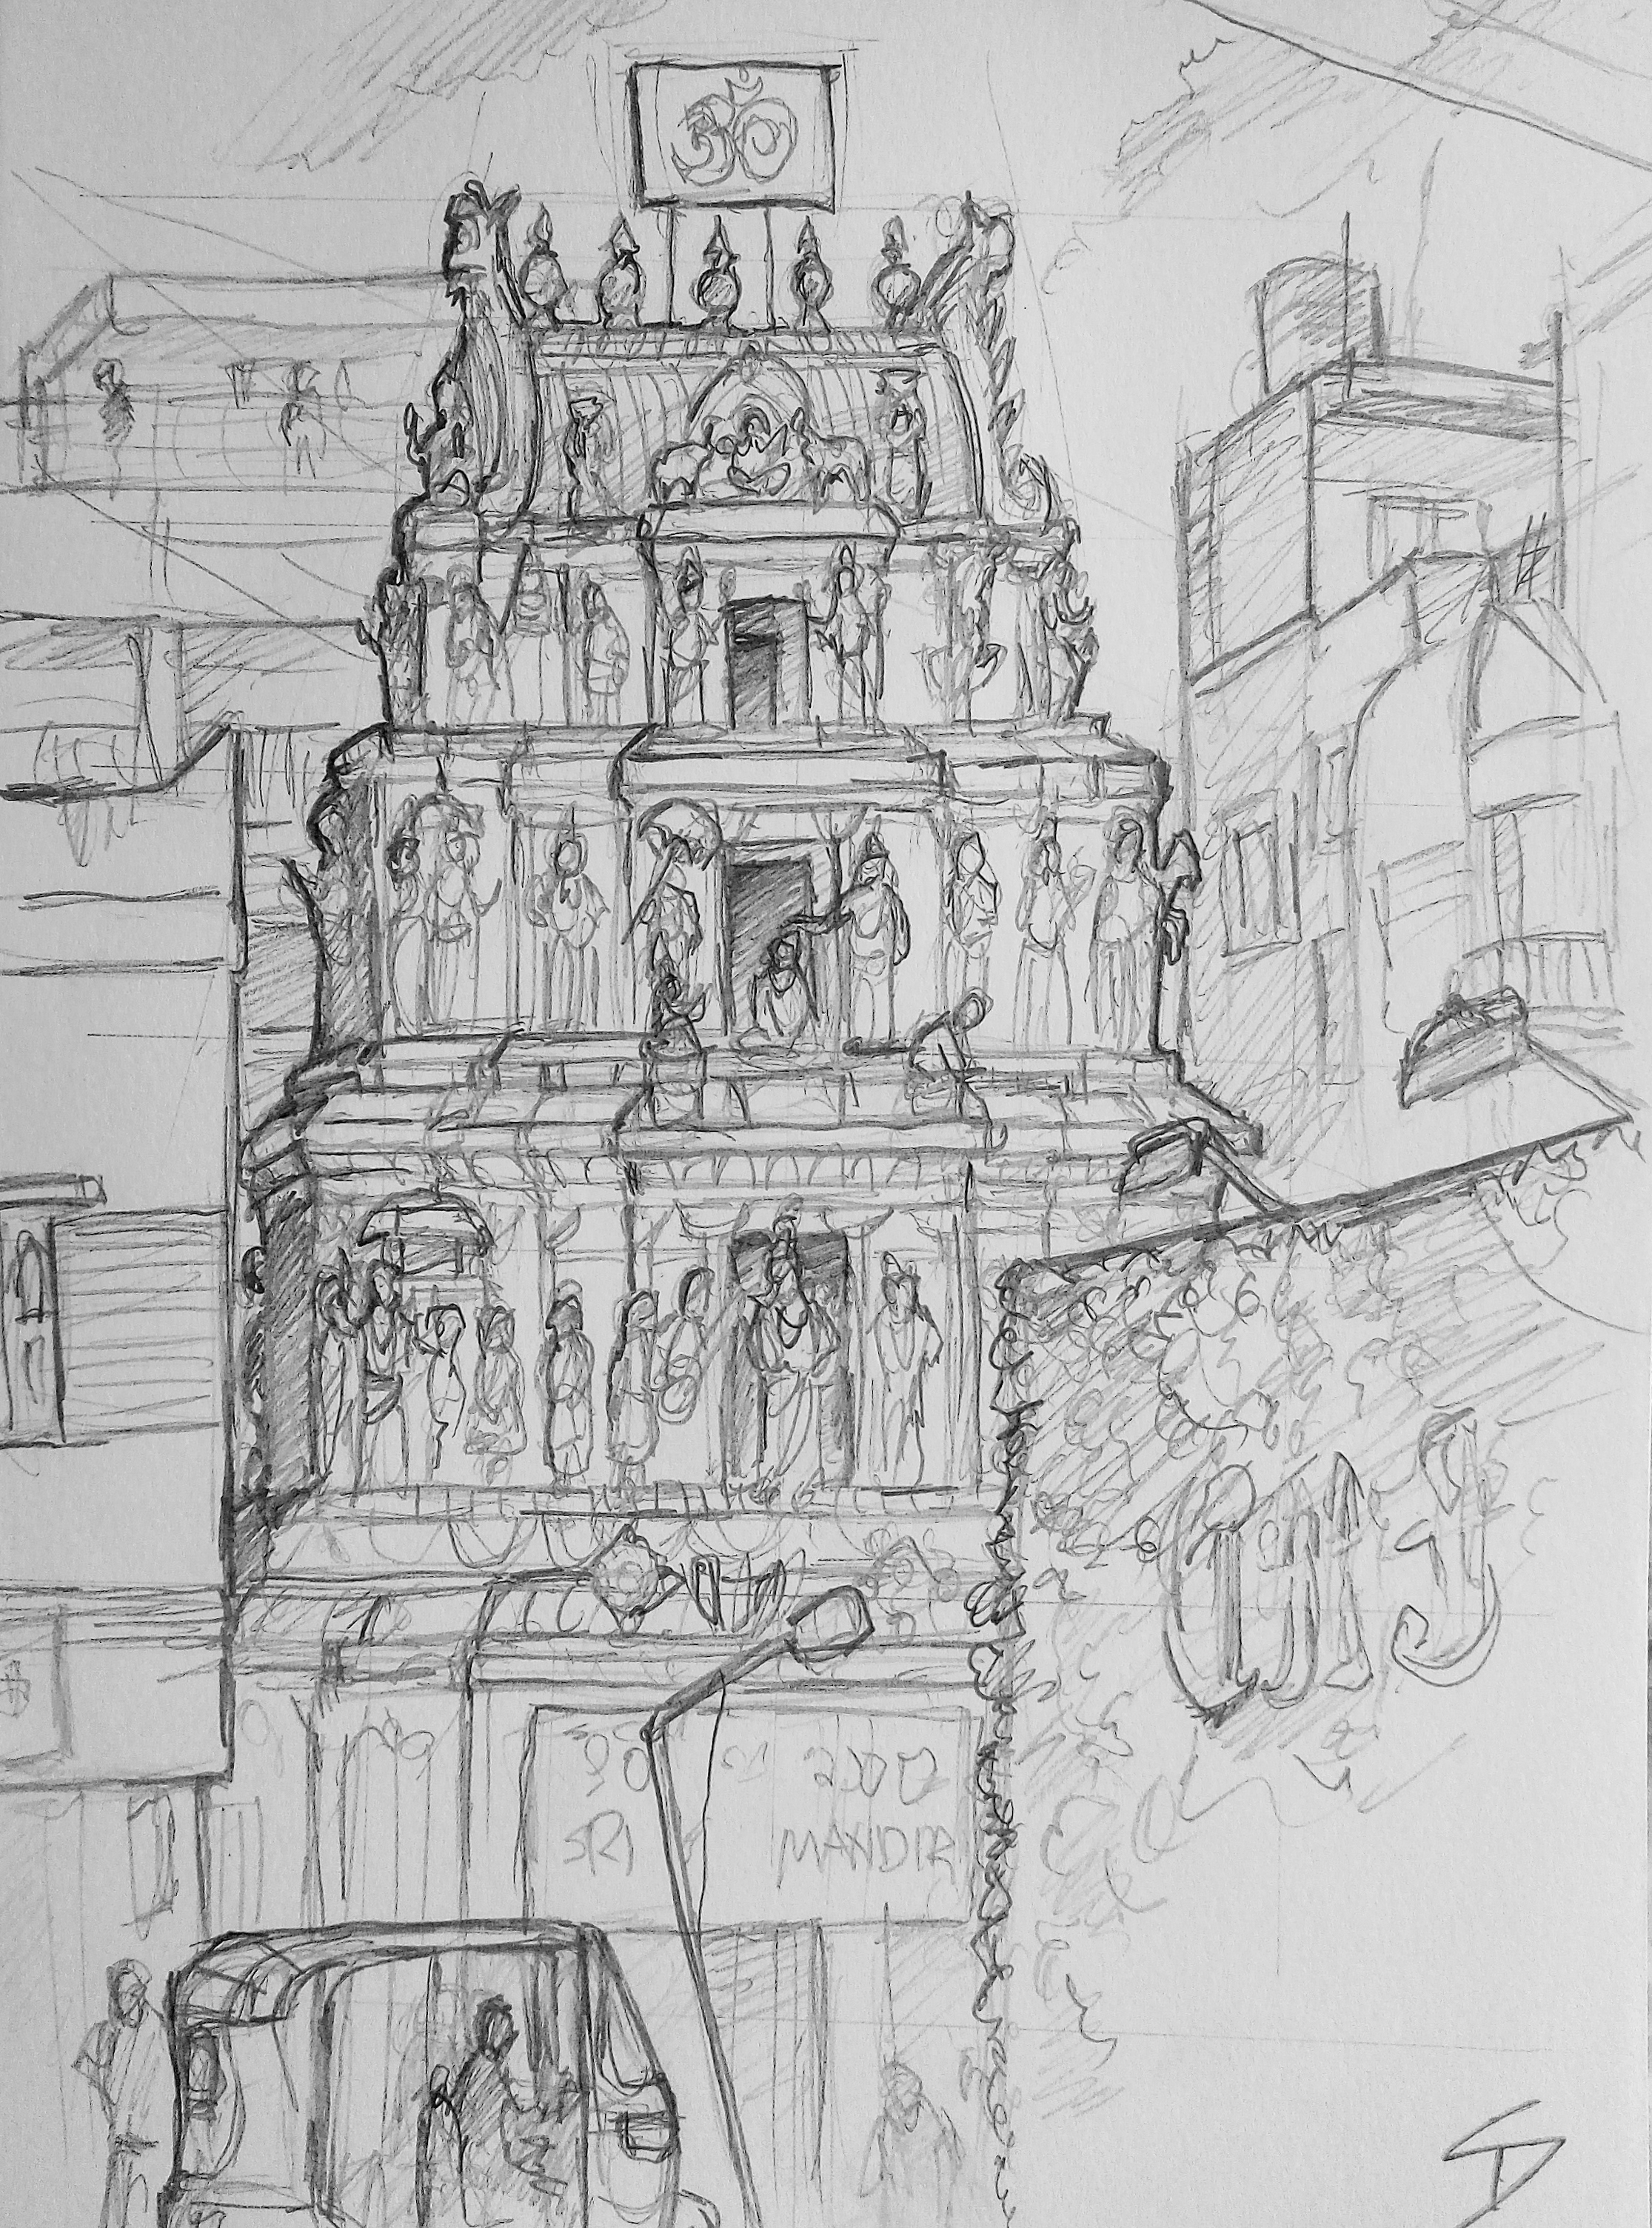 Urban art – Kamaraj Road, Sivanchetti Gardens, Bengaluru, India. 'Sri Vithal Rukmini Temple.' This Hindu temple can be found near the well known shopping district 'Commercial Street.' If you are looking for authentic Indian tailoring, you can't go wrong here. sketchbookexplorer.com @davidasutton @sketchbookexplorer Facebook.com/davidanthonysutton #sketch #drawing #art #bangaluru #karnataka #temple #hindutemple #hindu #travel #travelblog #india